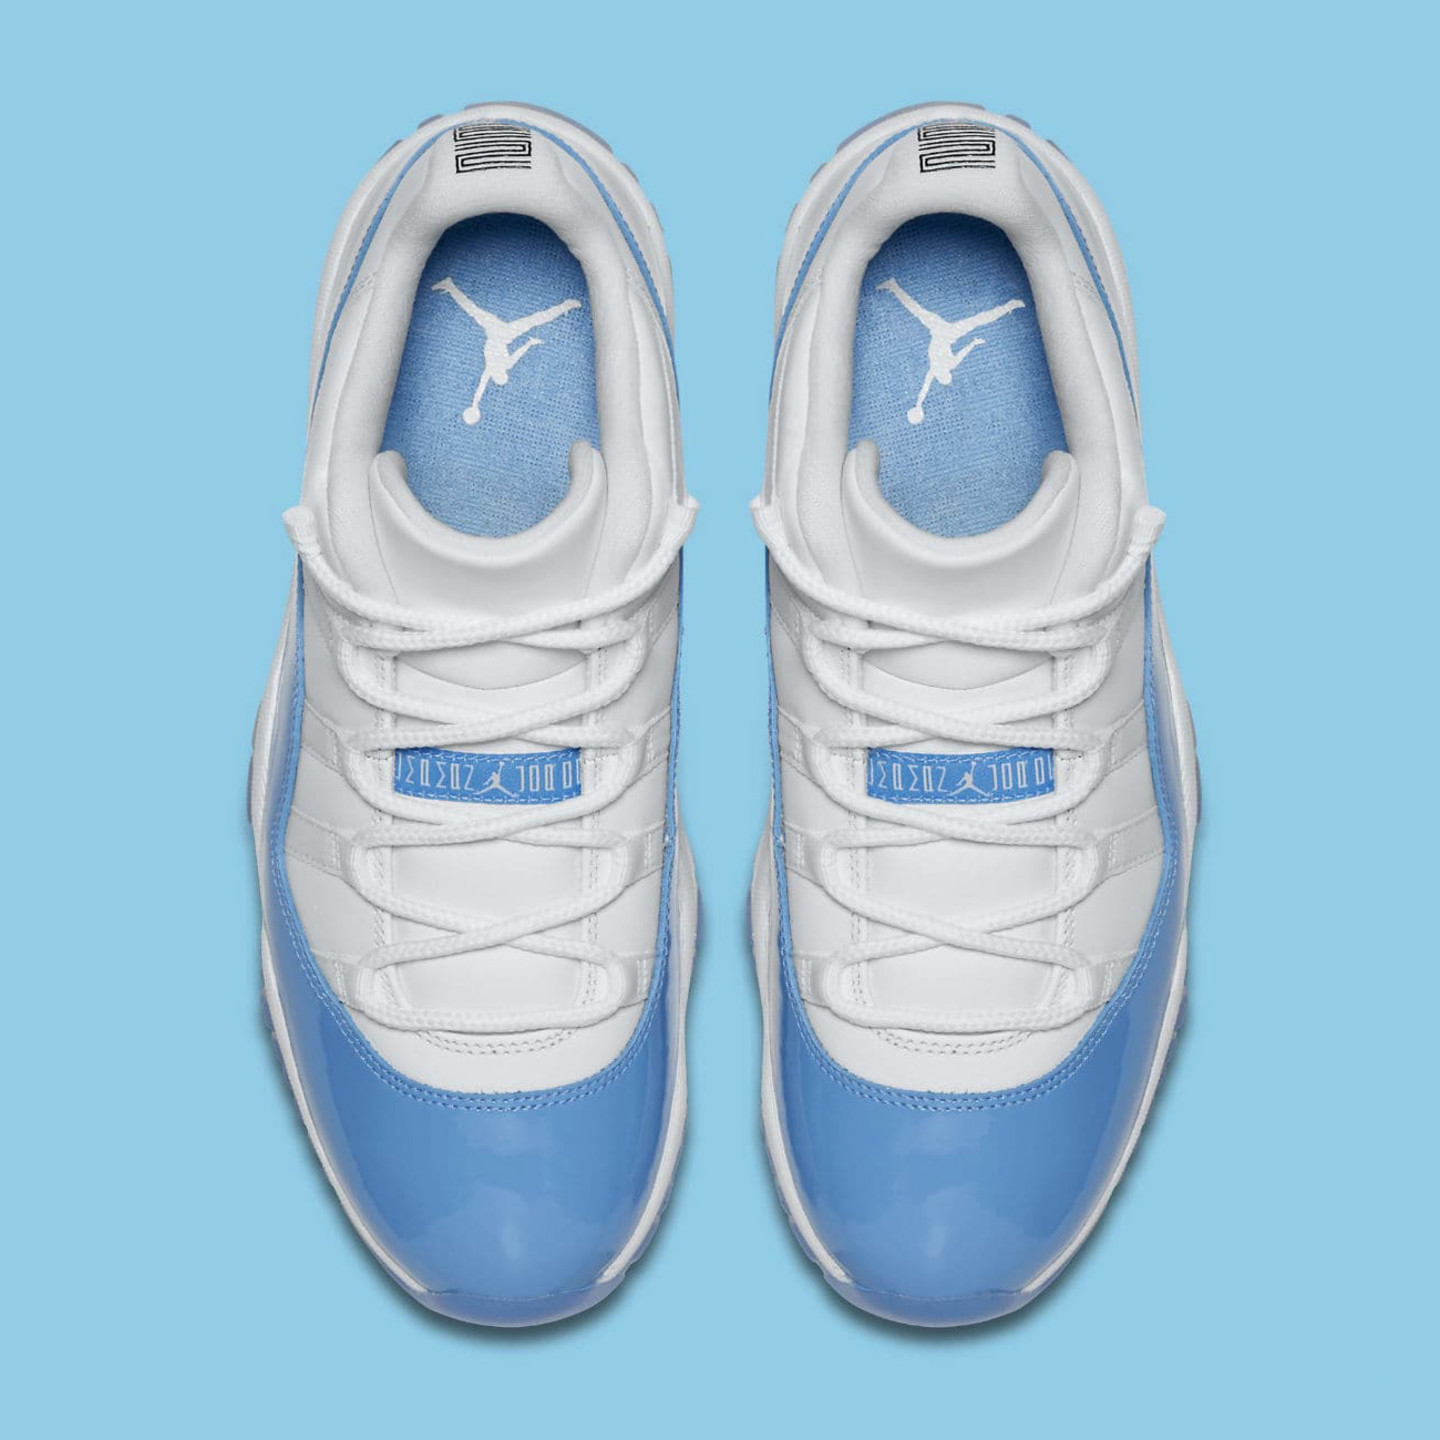 Jordan Air Jordan 11 Retro Low 'UNC' White / University Blue 528895-106-47.5